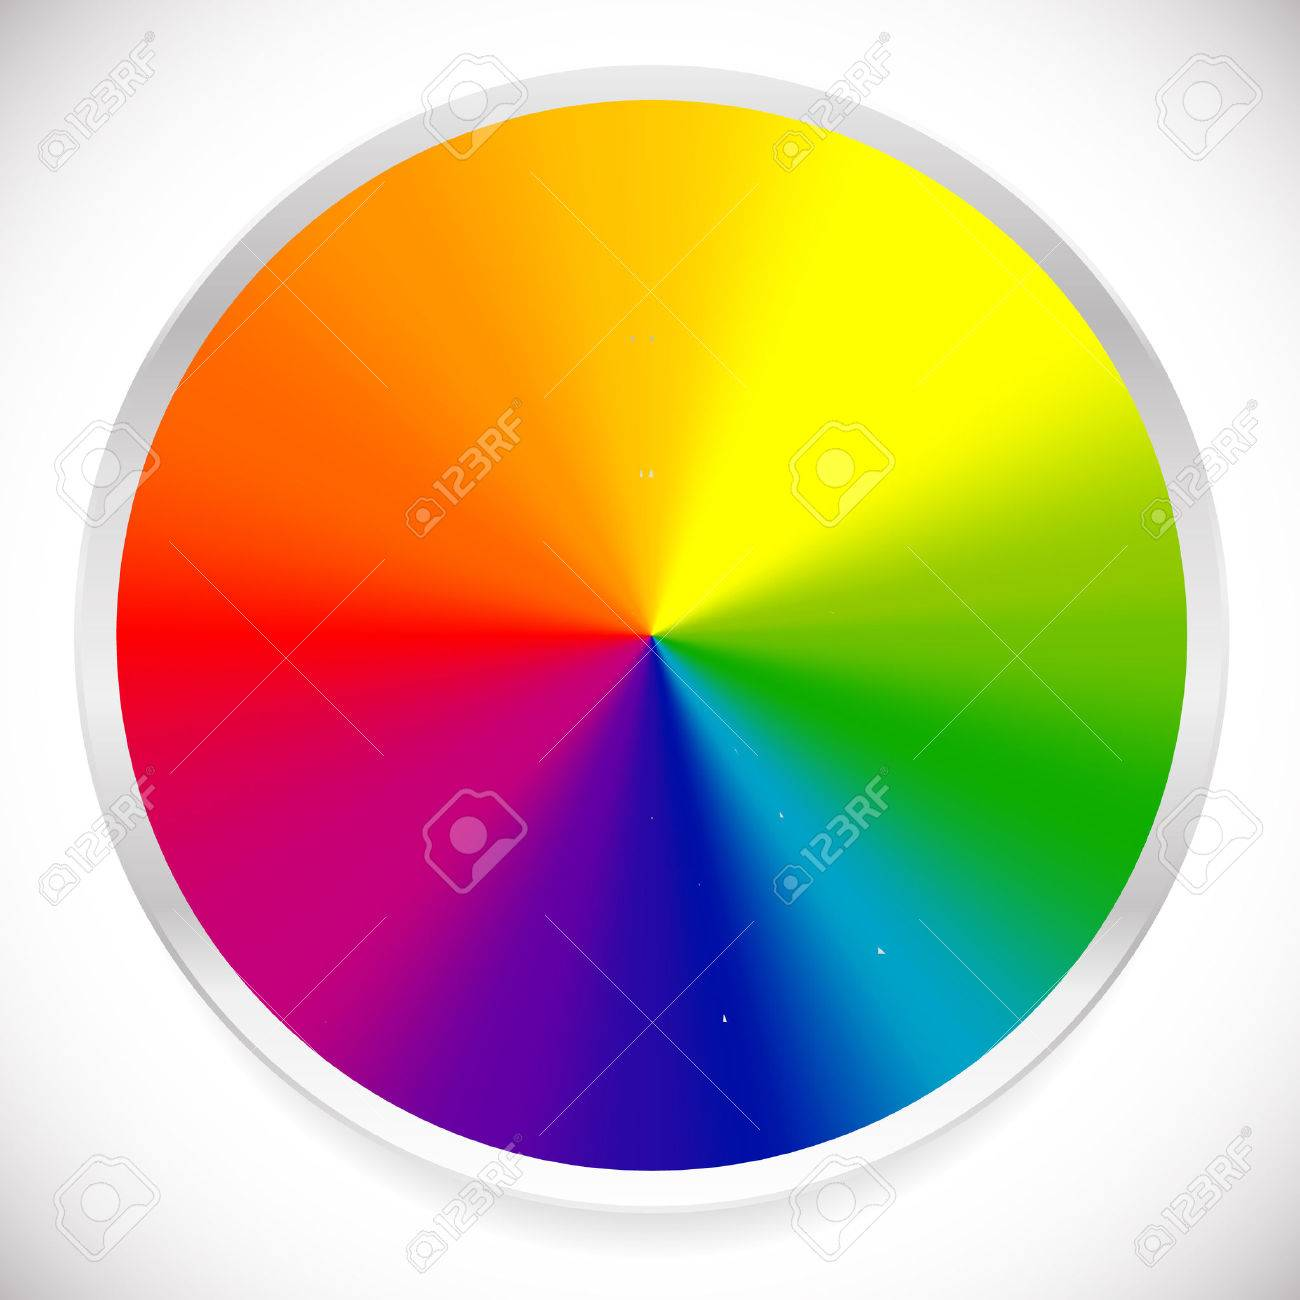 Color Wheel Circular Circle Palette With Vibrant Vivid Colors Stock Vector